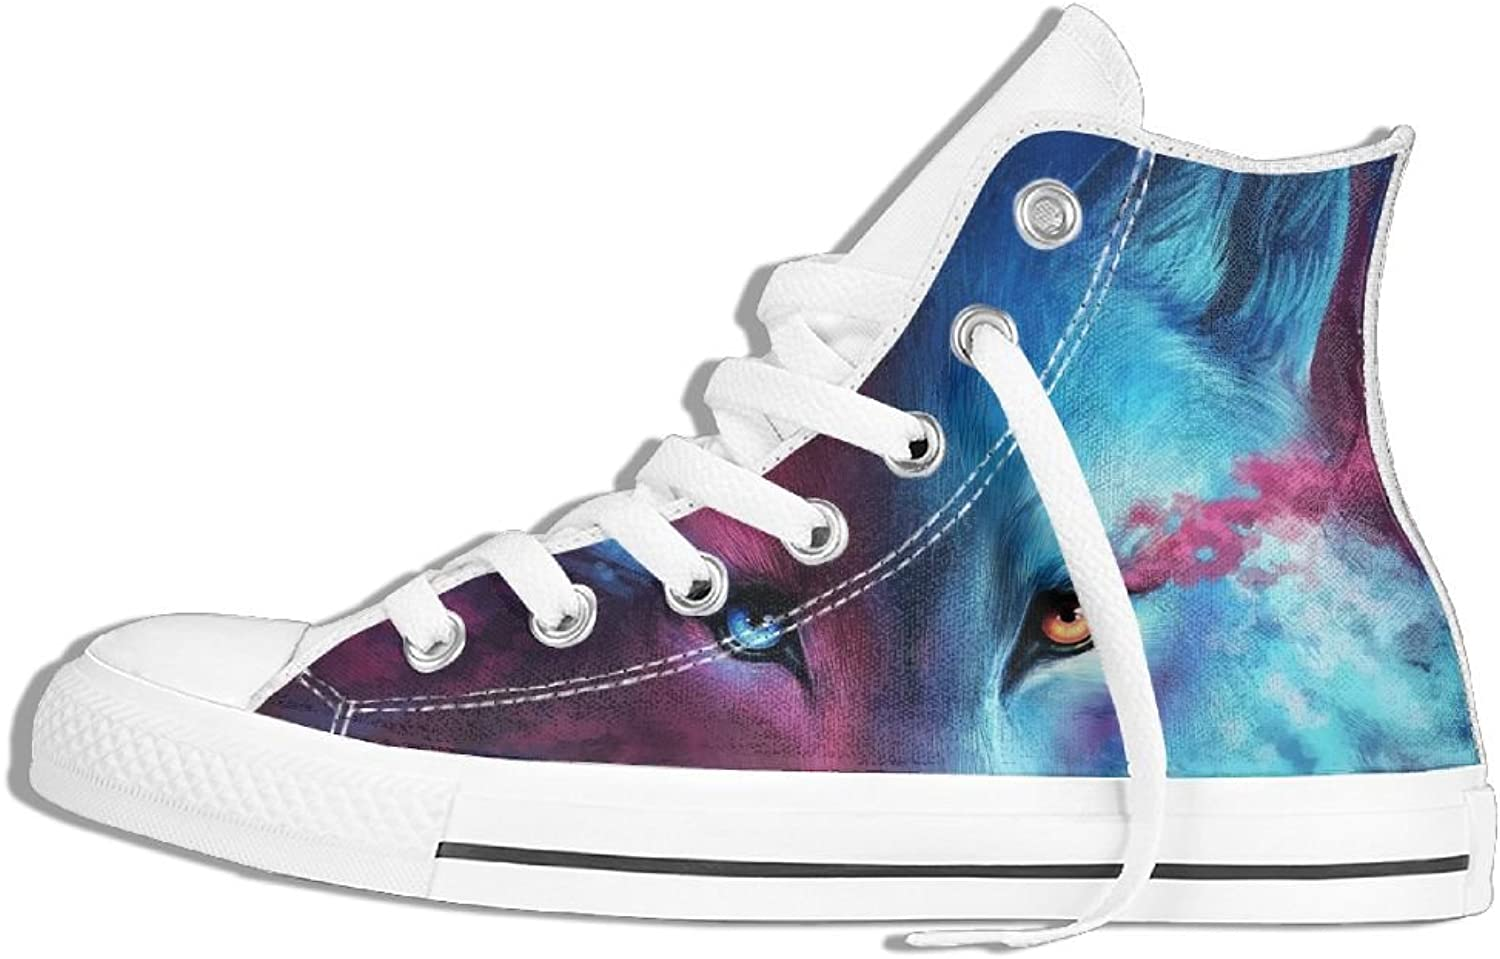 Galaxy Wolf High Top Classic Casual Canvas Fashion shoes Sneakers For Women & Men